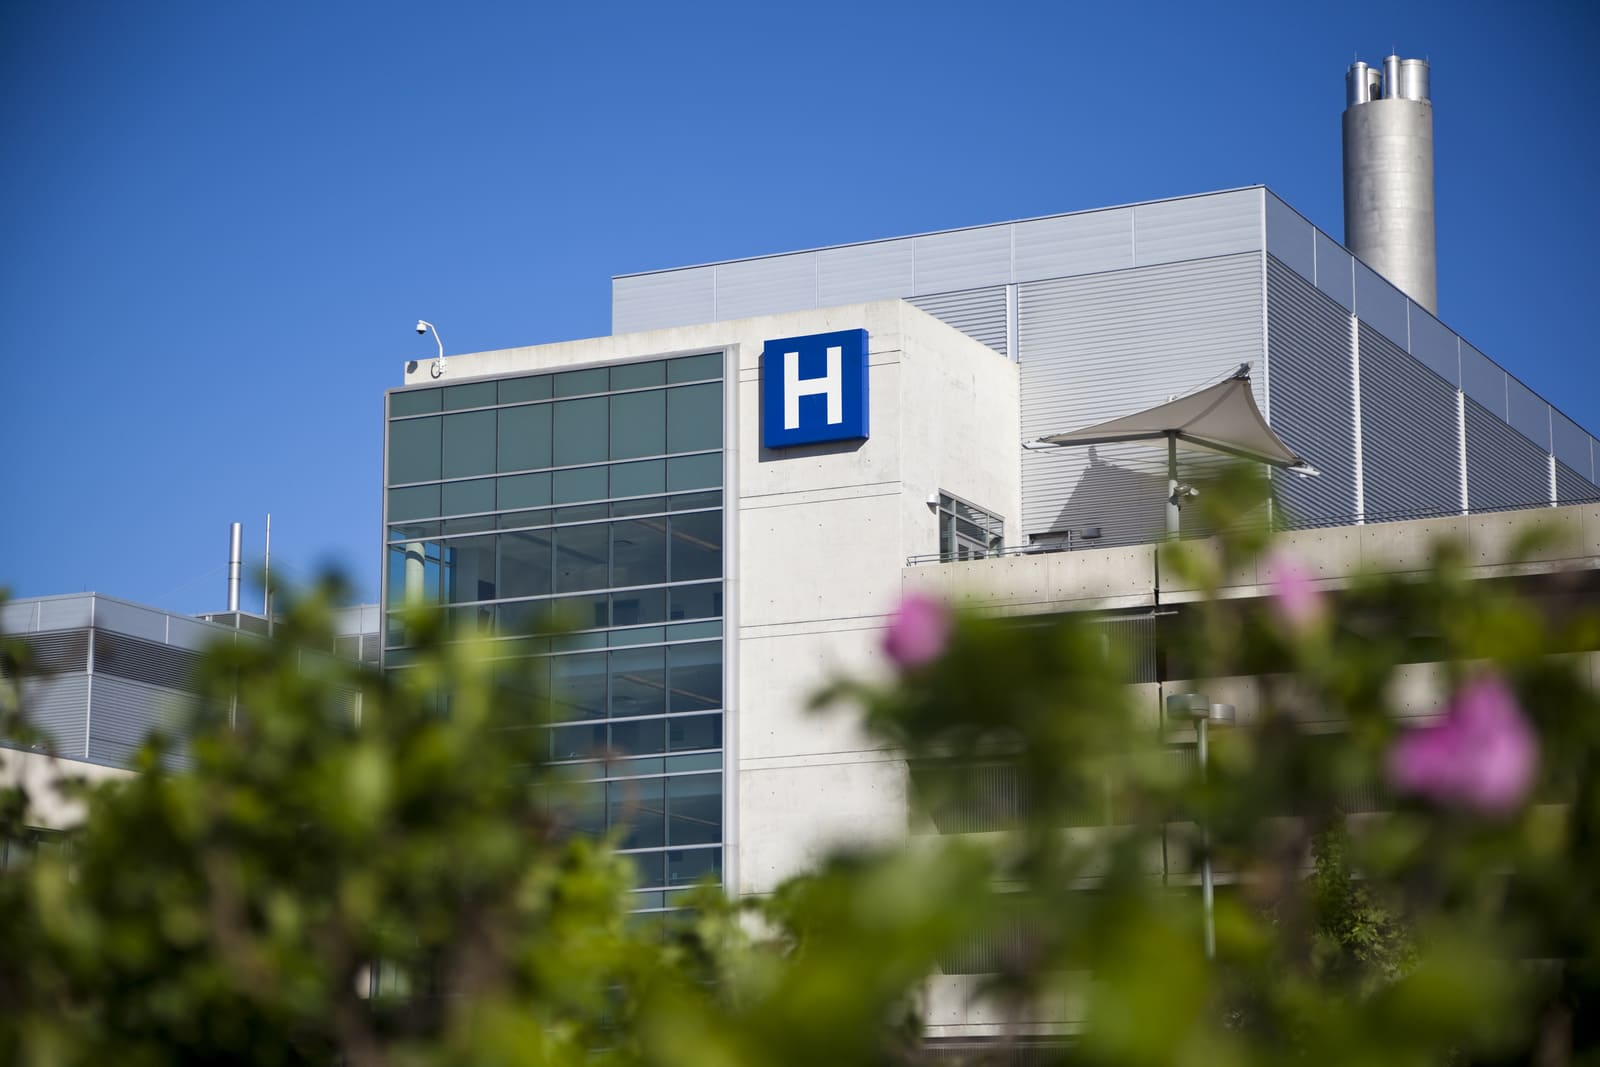 Healthcare Architecture The Science of building hospitals